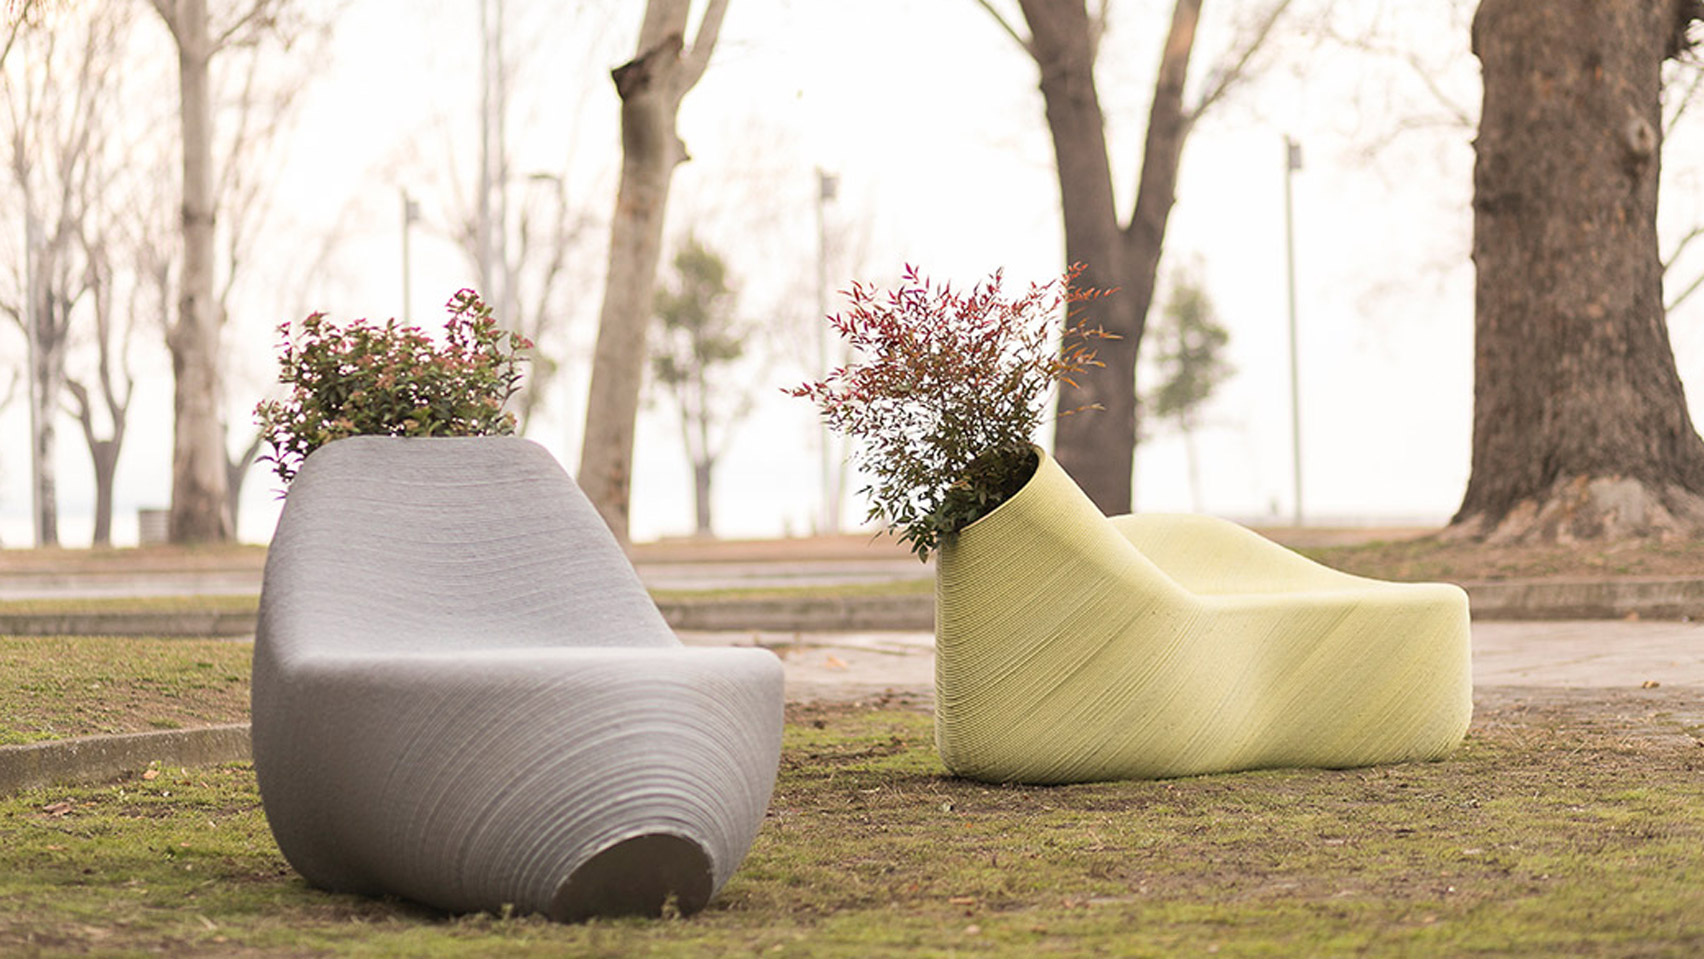 Print Your City Turns Recycled Food Containers Into Street Furniture